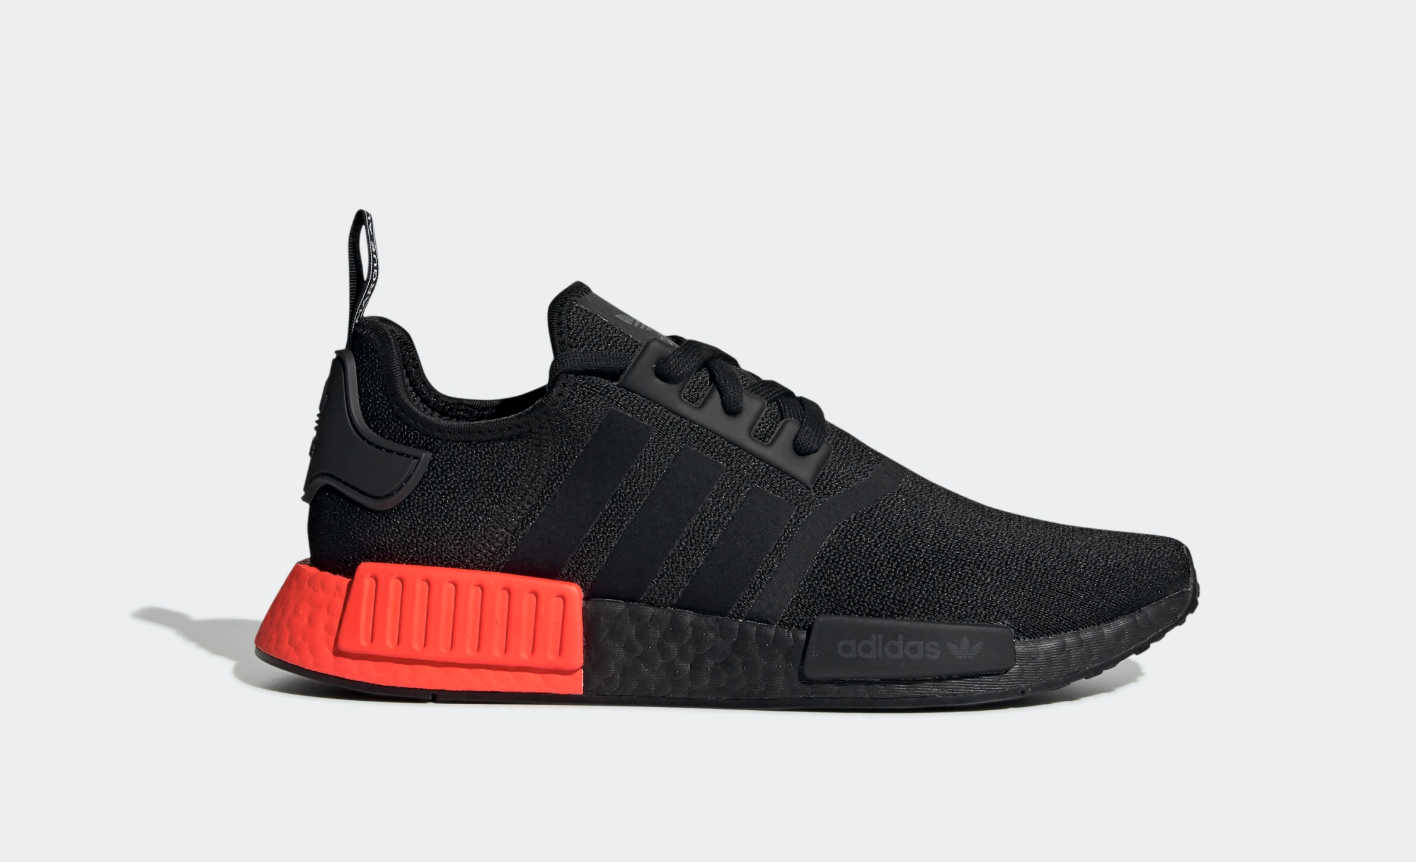 Details about adidas NMD R1 Core Black Solar Red F35881 100% AUTHENTIC Last Size US Running DS